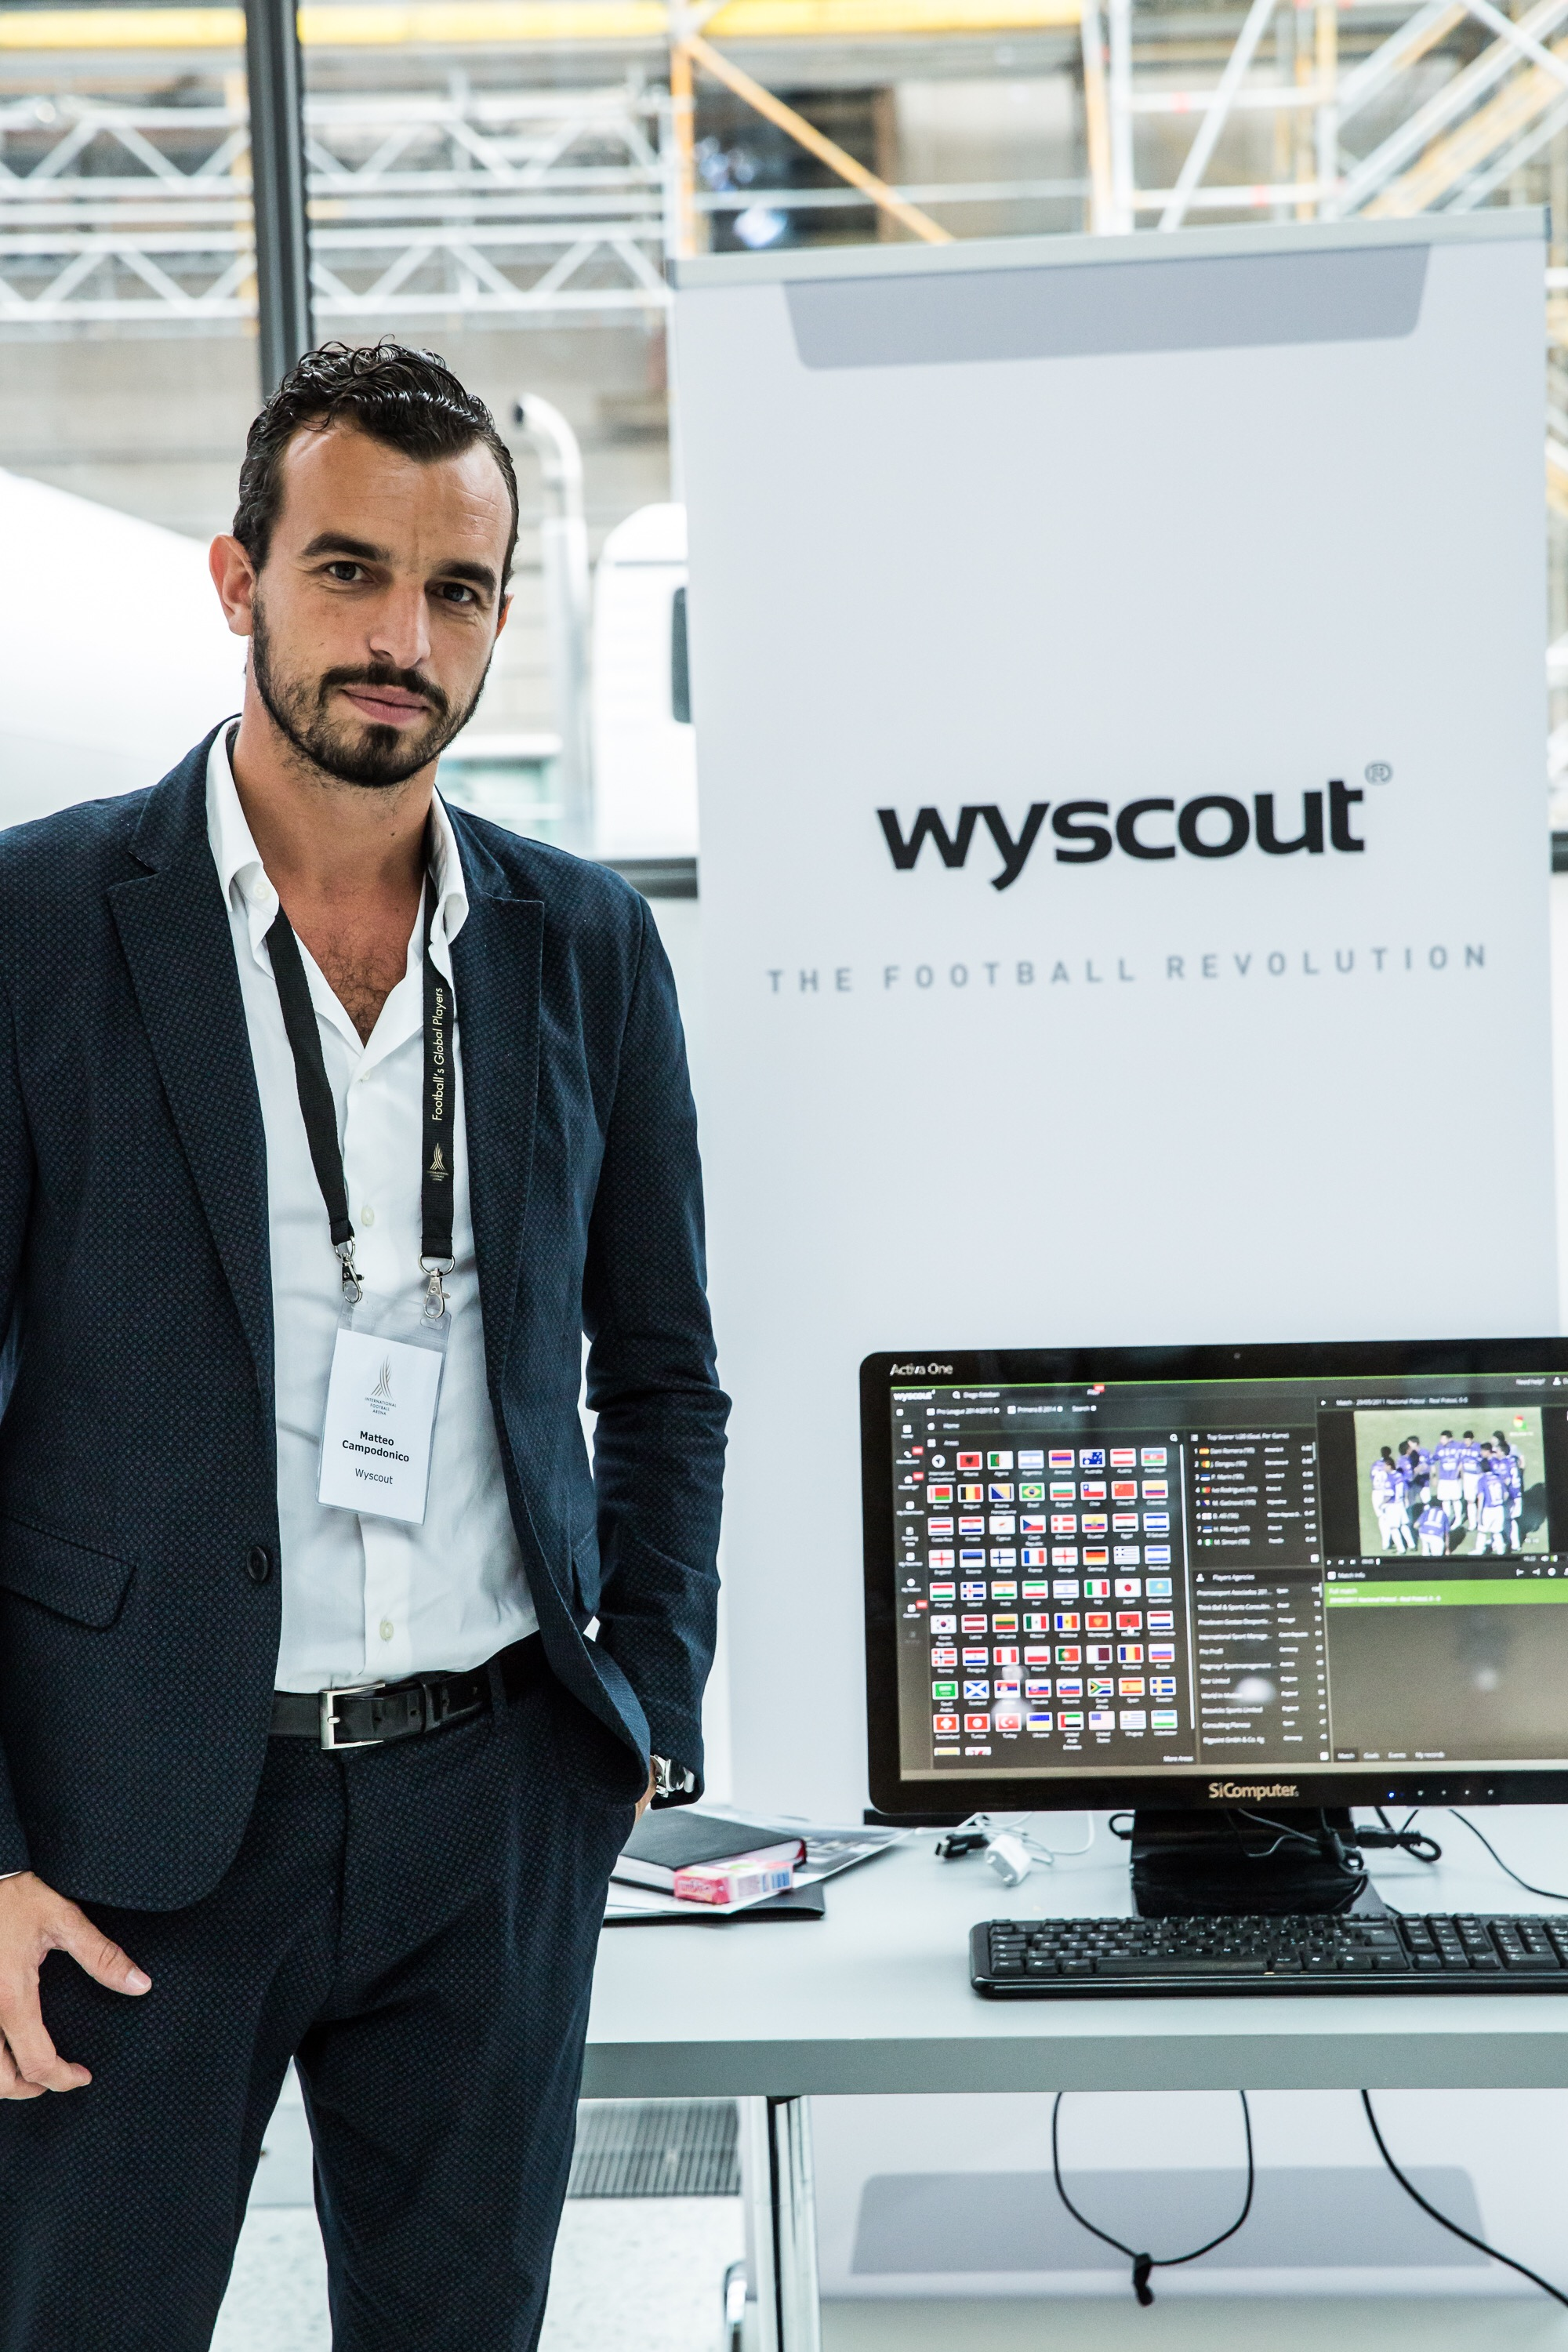 Wyscout is based in Italy